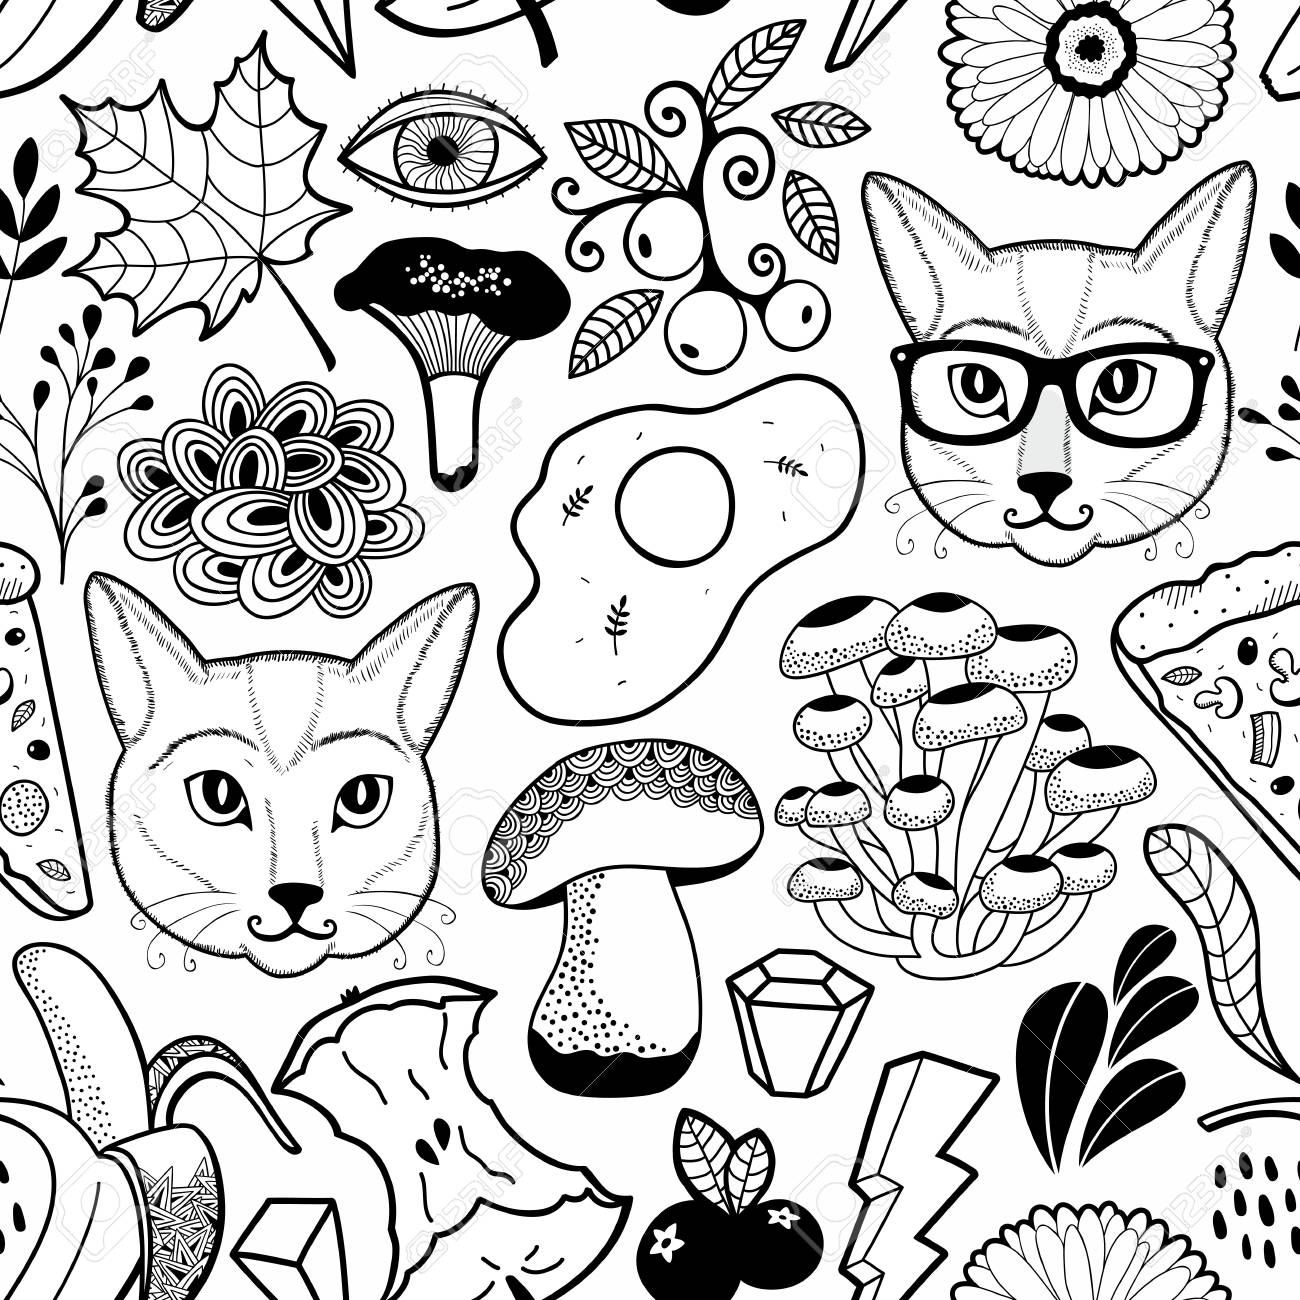 Black And White Endless Wallpaper With Hipster Cats And Autumn Royalty Free Cliparts Vectors And Stock Illustration Image 125828380,Valentines Decoration Ideas